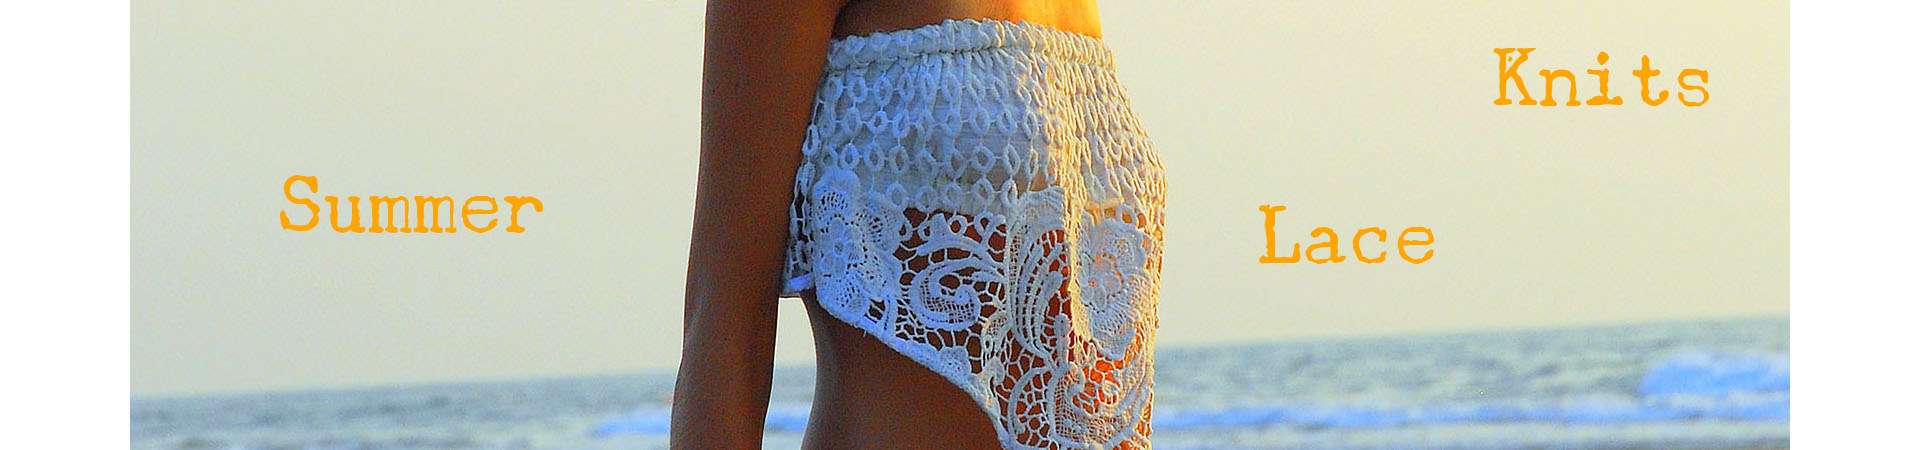 Summer Lace and Knits